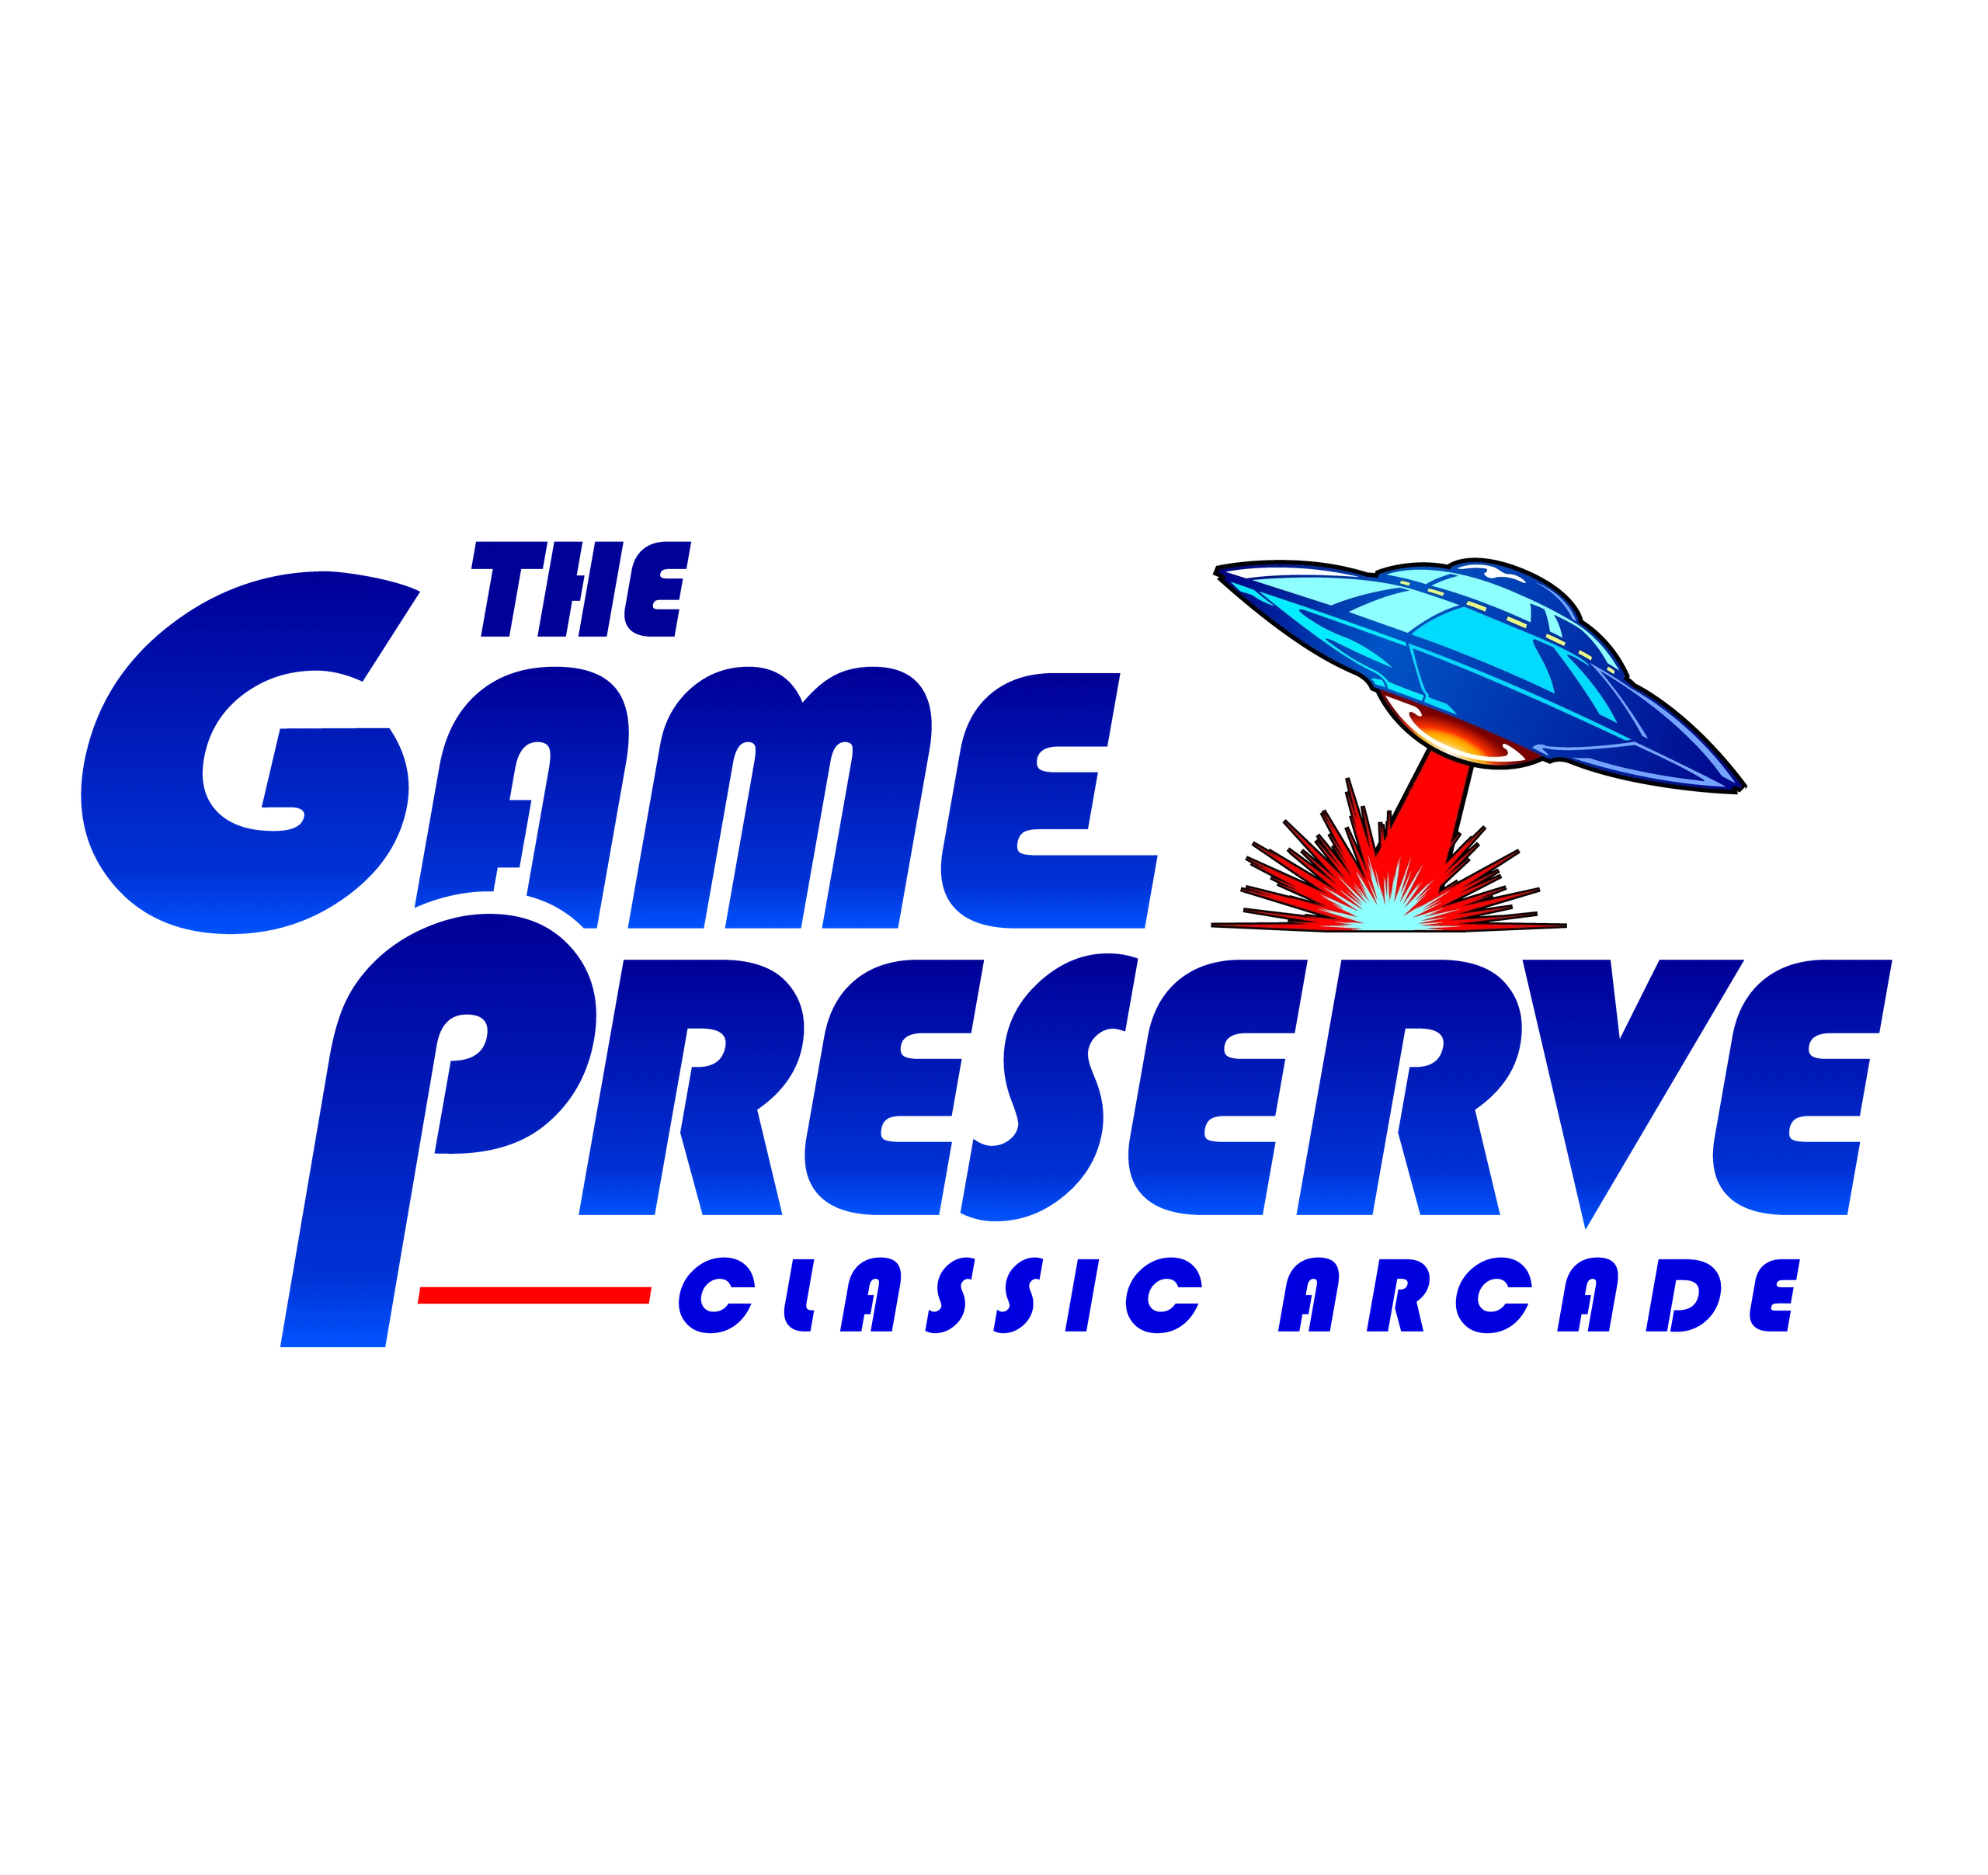 The Game Preserve arcade flying saucer logo